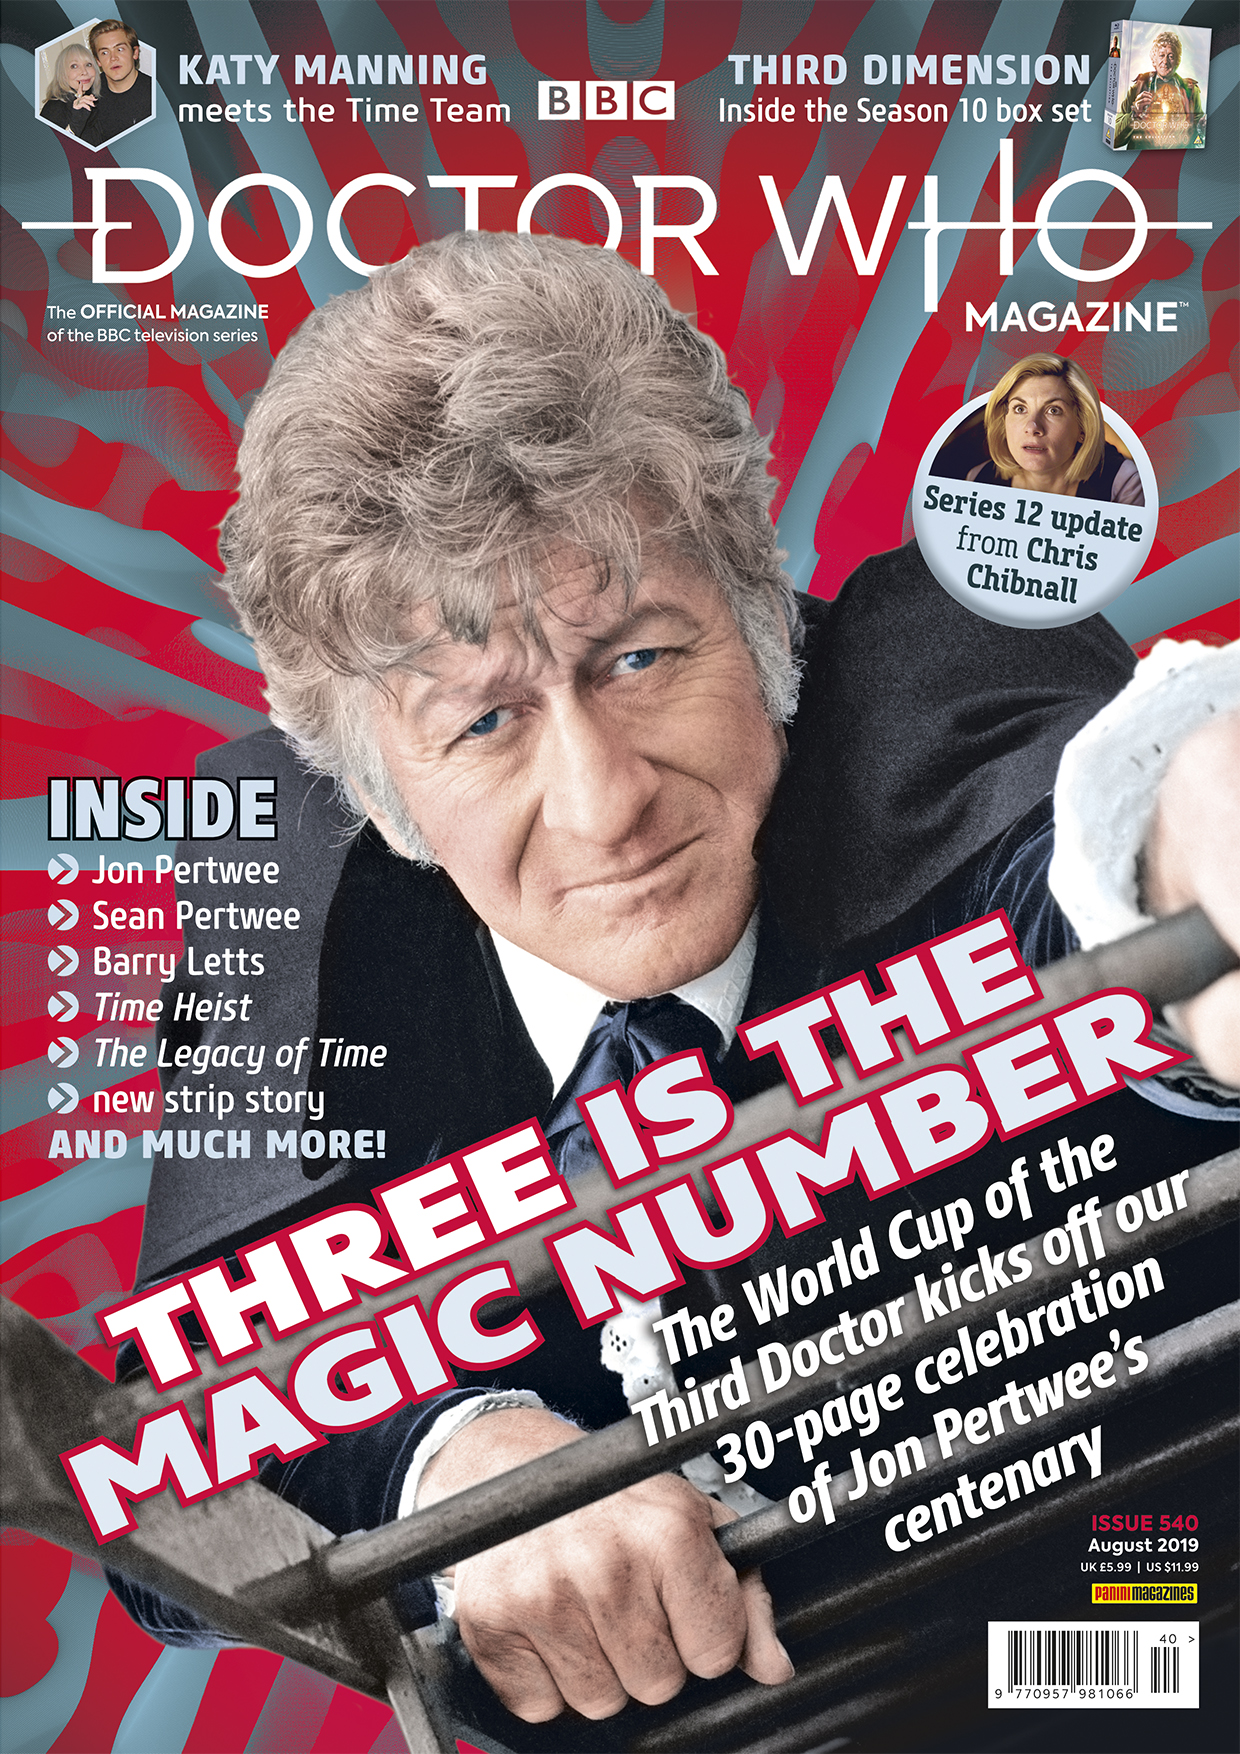 Doctor Who Magazine, Issue 540